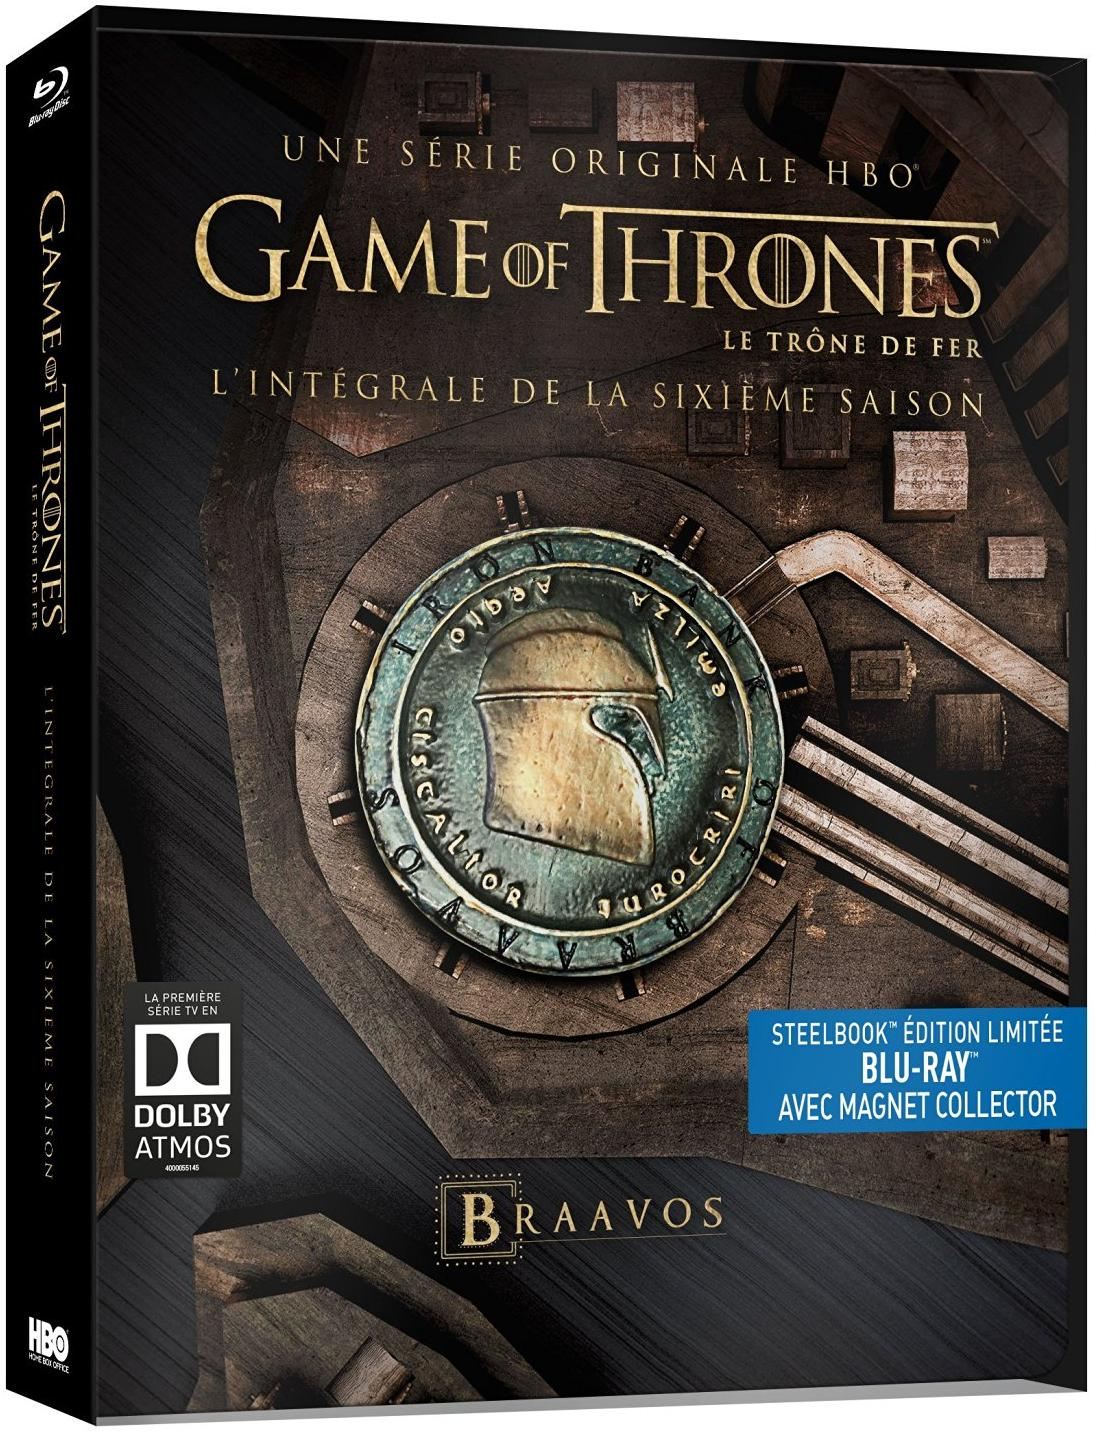 Games Of Thrones, Saison 6 - boîtier steelbook